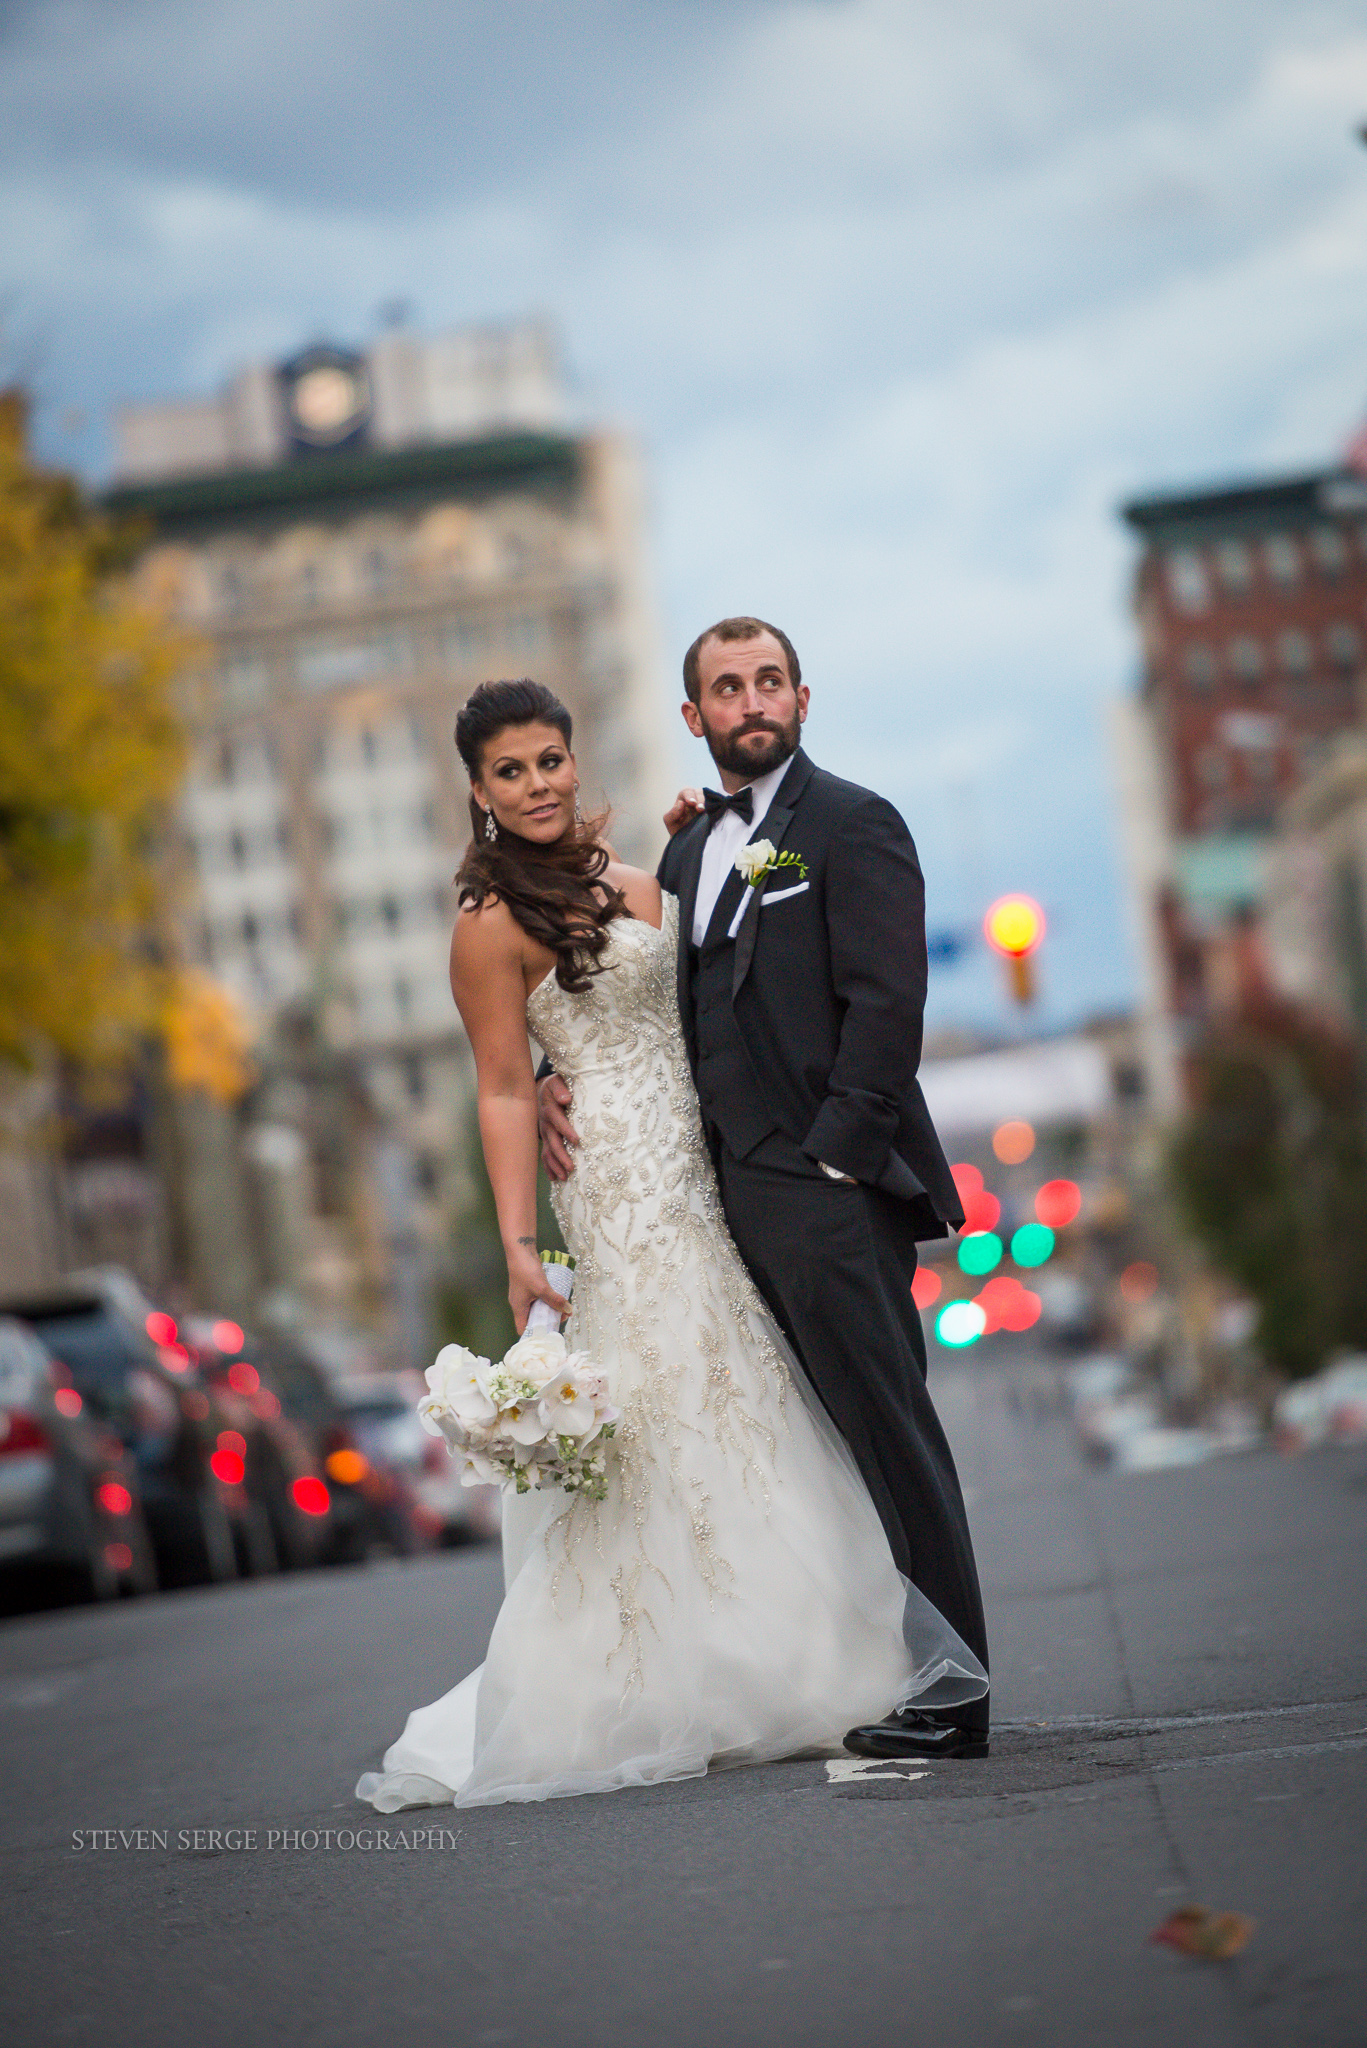 Denn-NEPA-Scranton-wedding-photographer-cultural-downtown-street-photography-dress-4.jpg